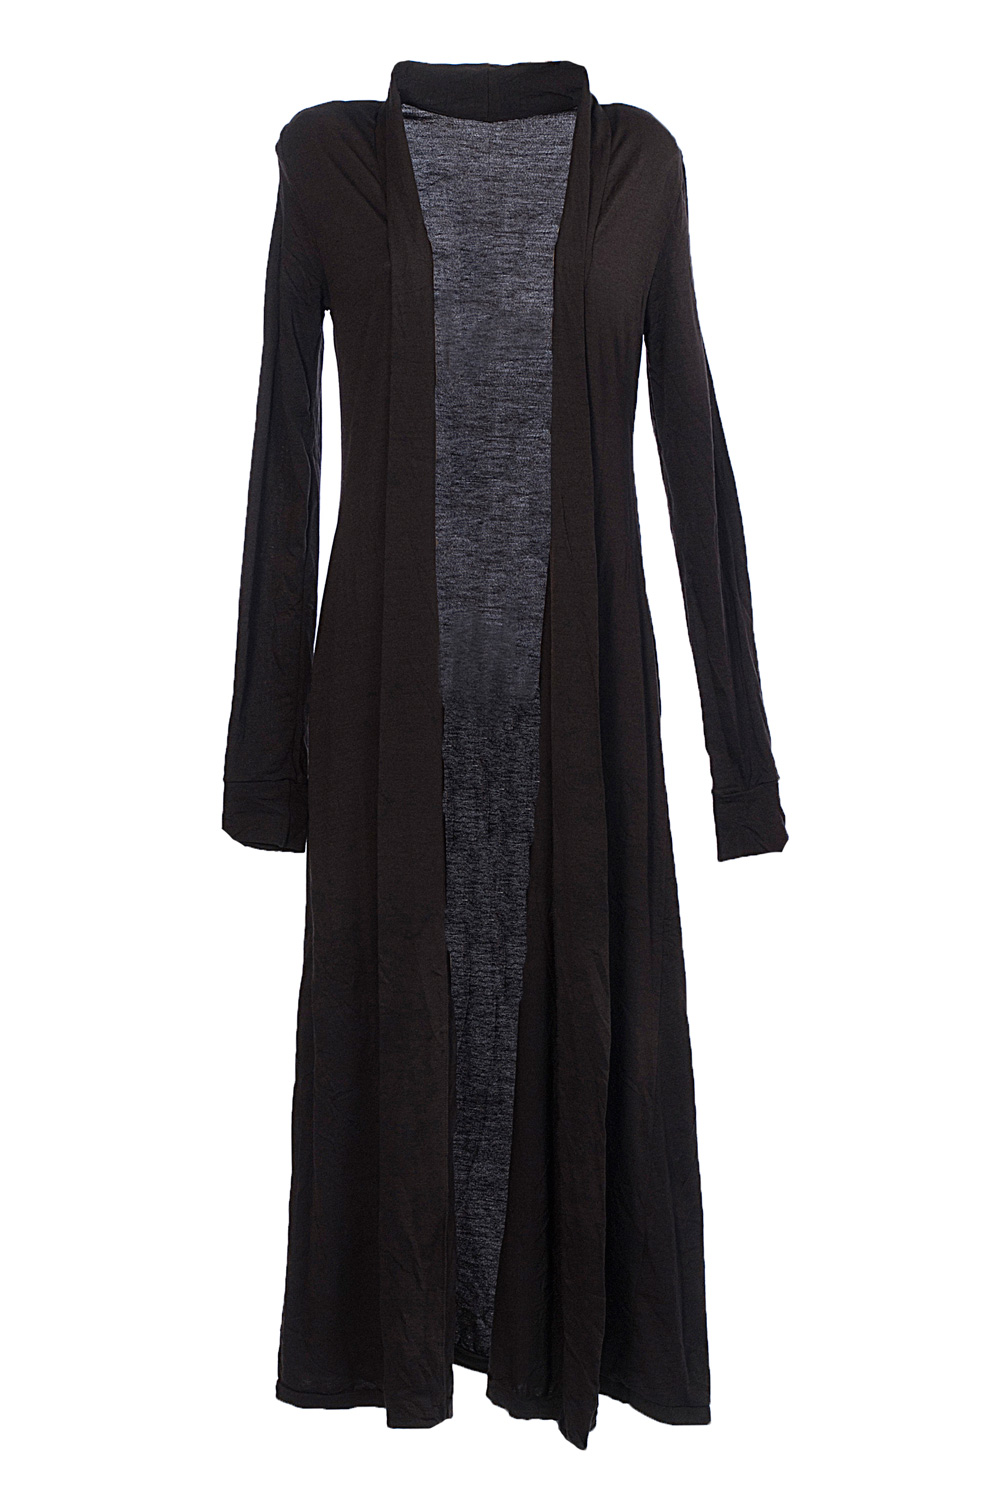 Mesop clothing online Light Wool Long Cardigan - Womens Cardigans ...